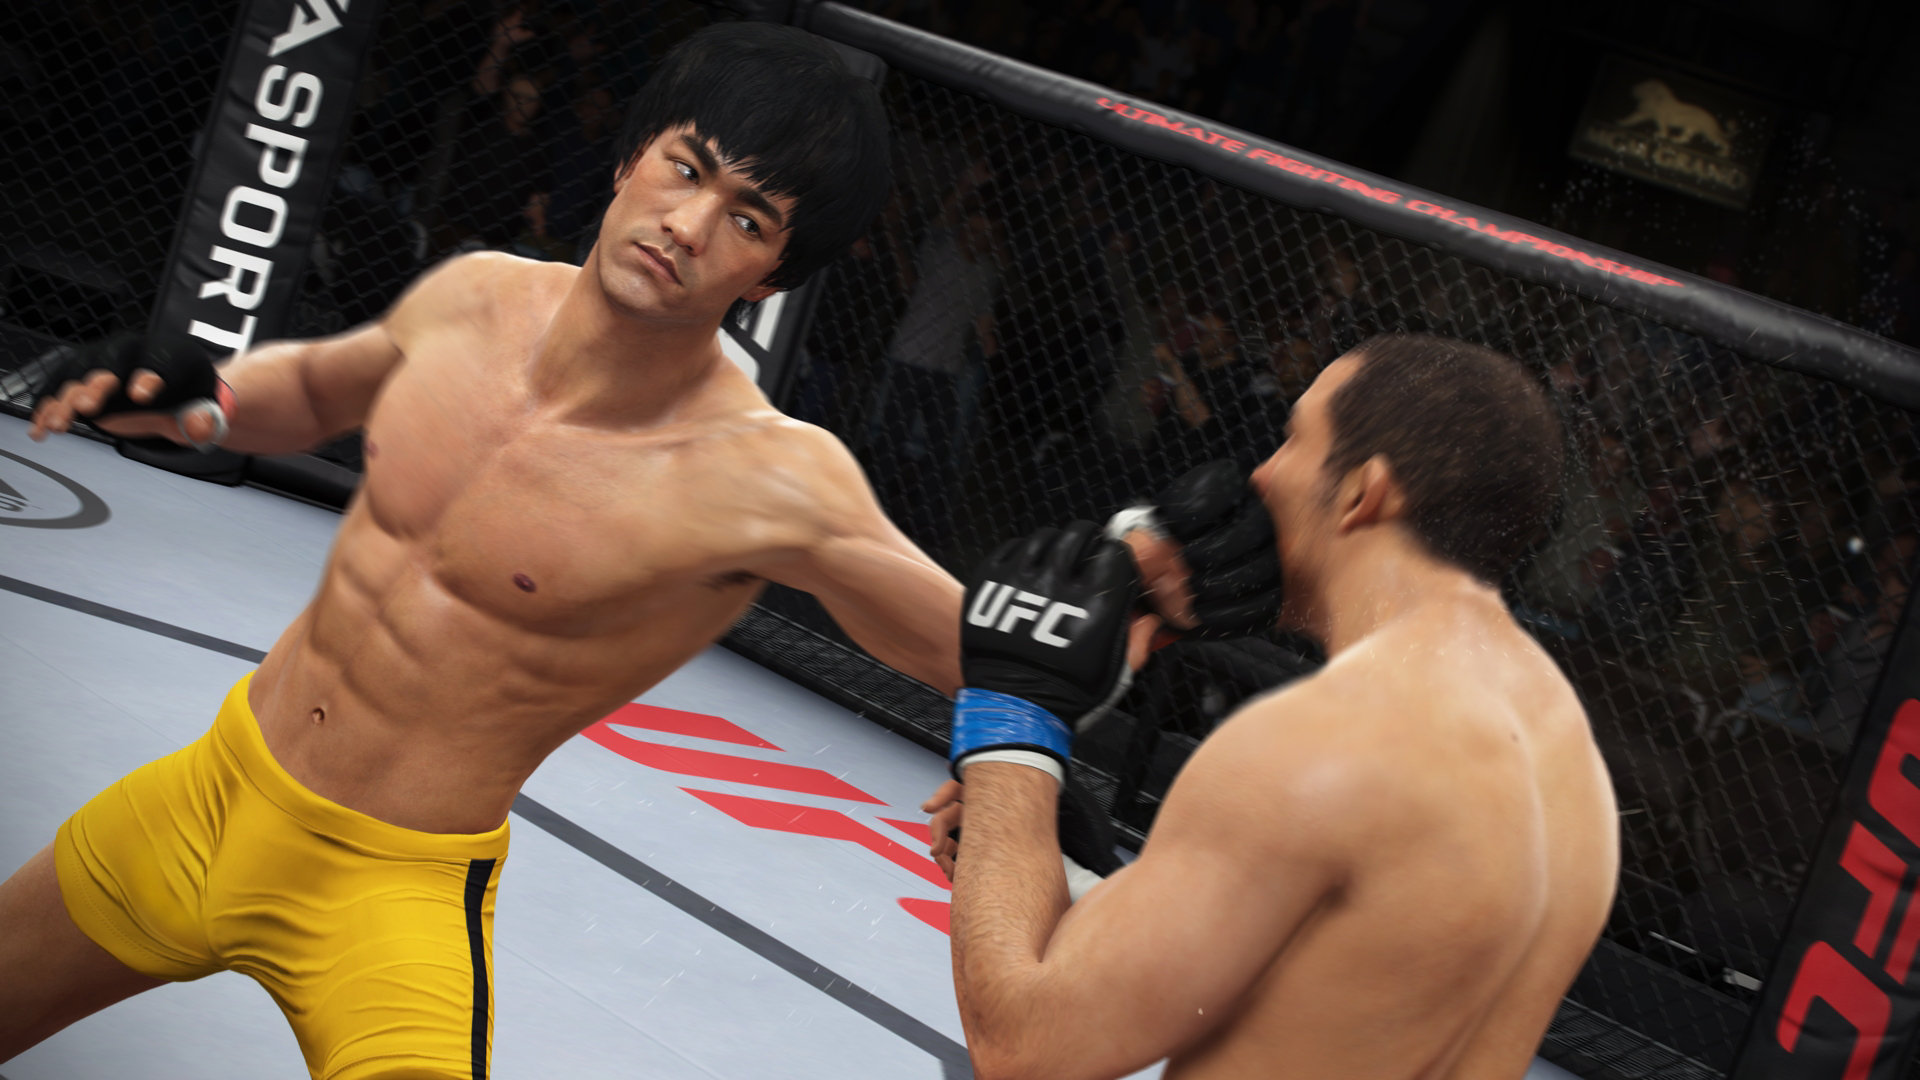 ufc game for pc free download full version